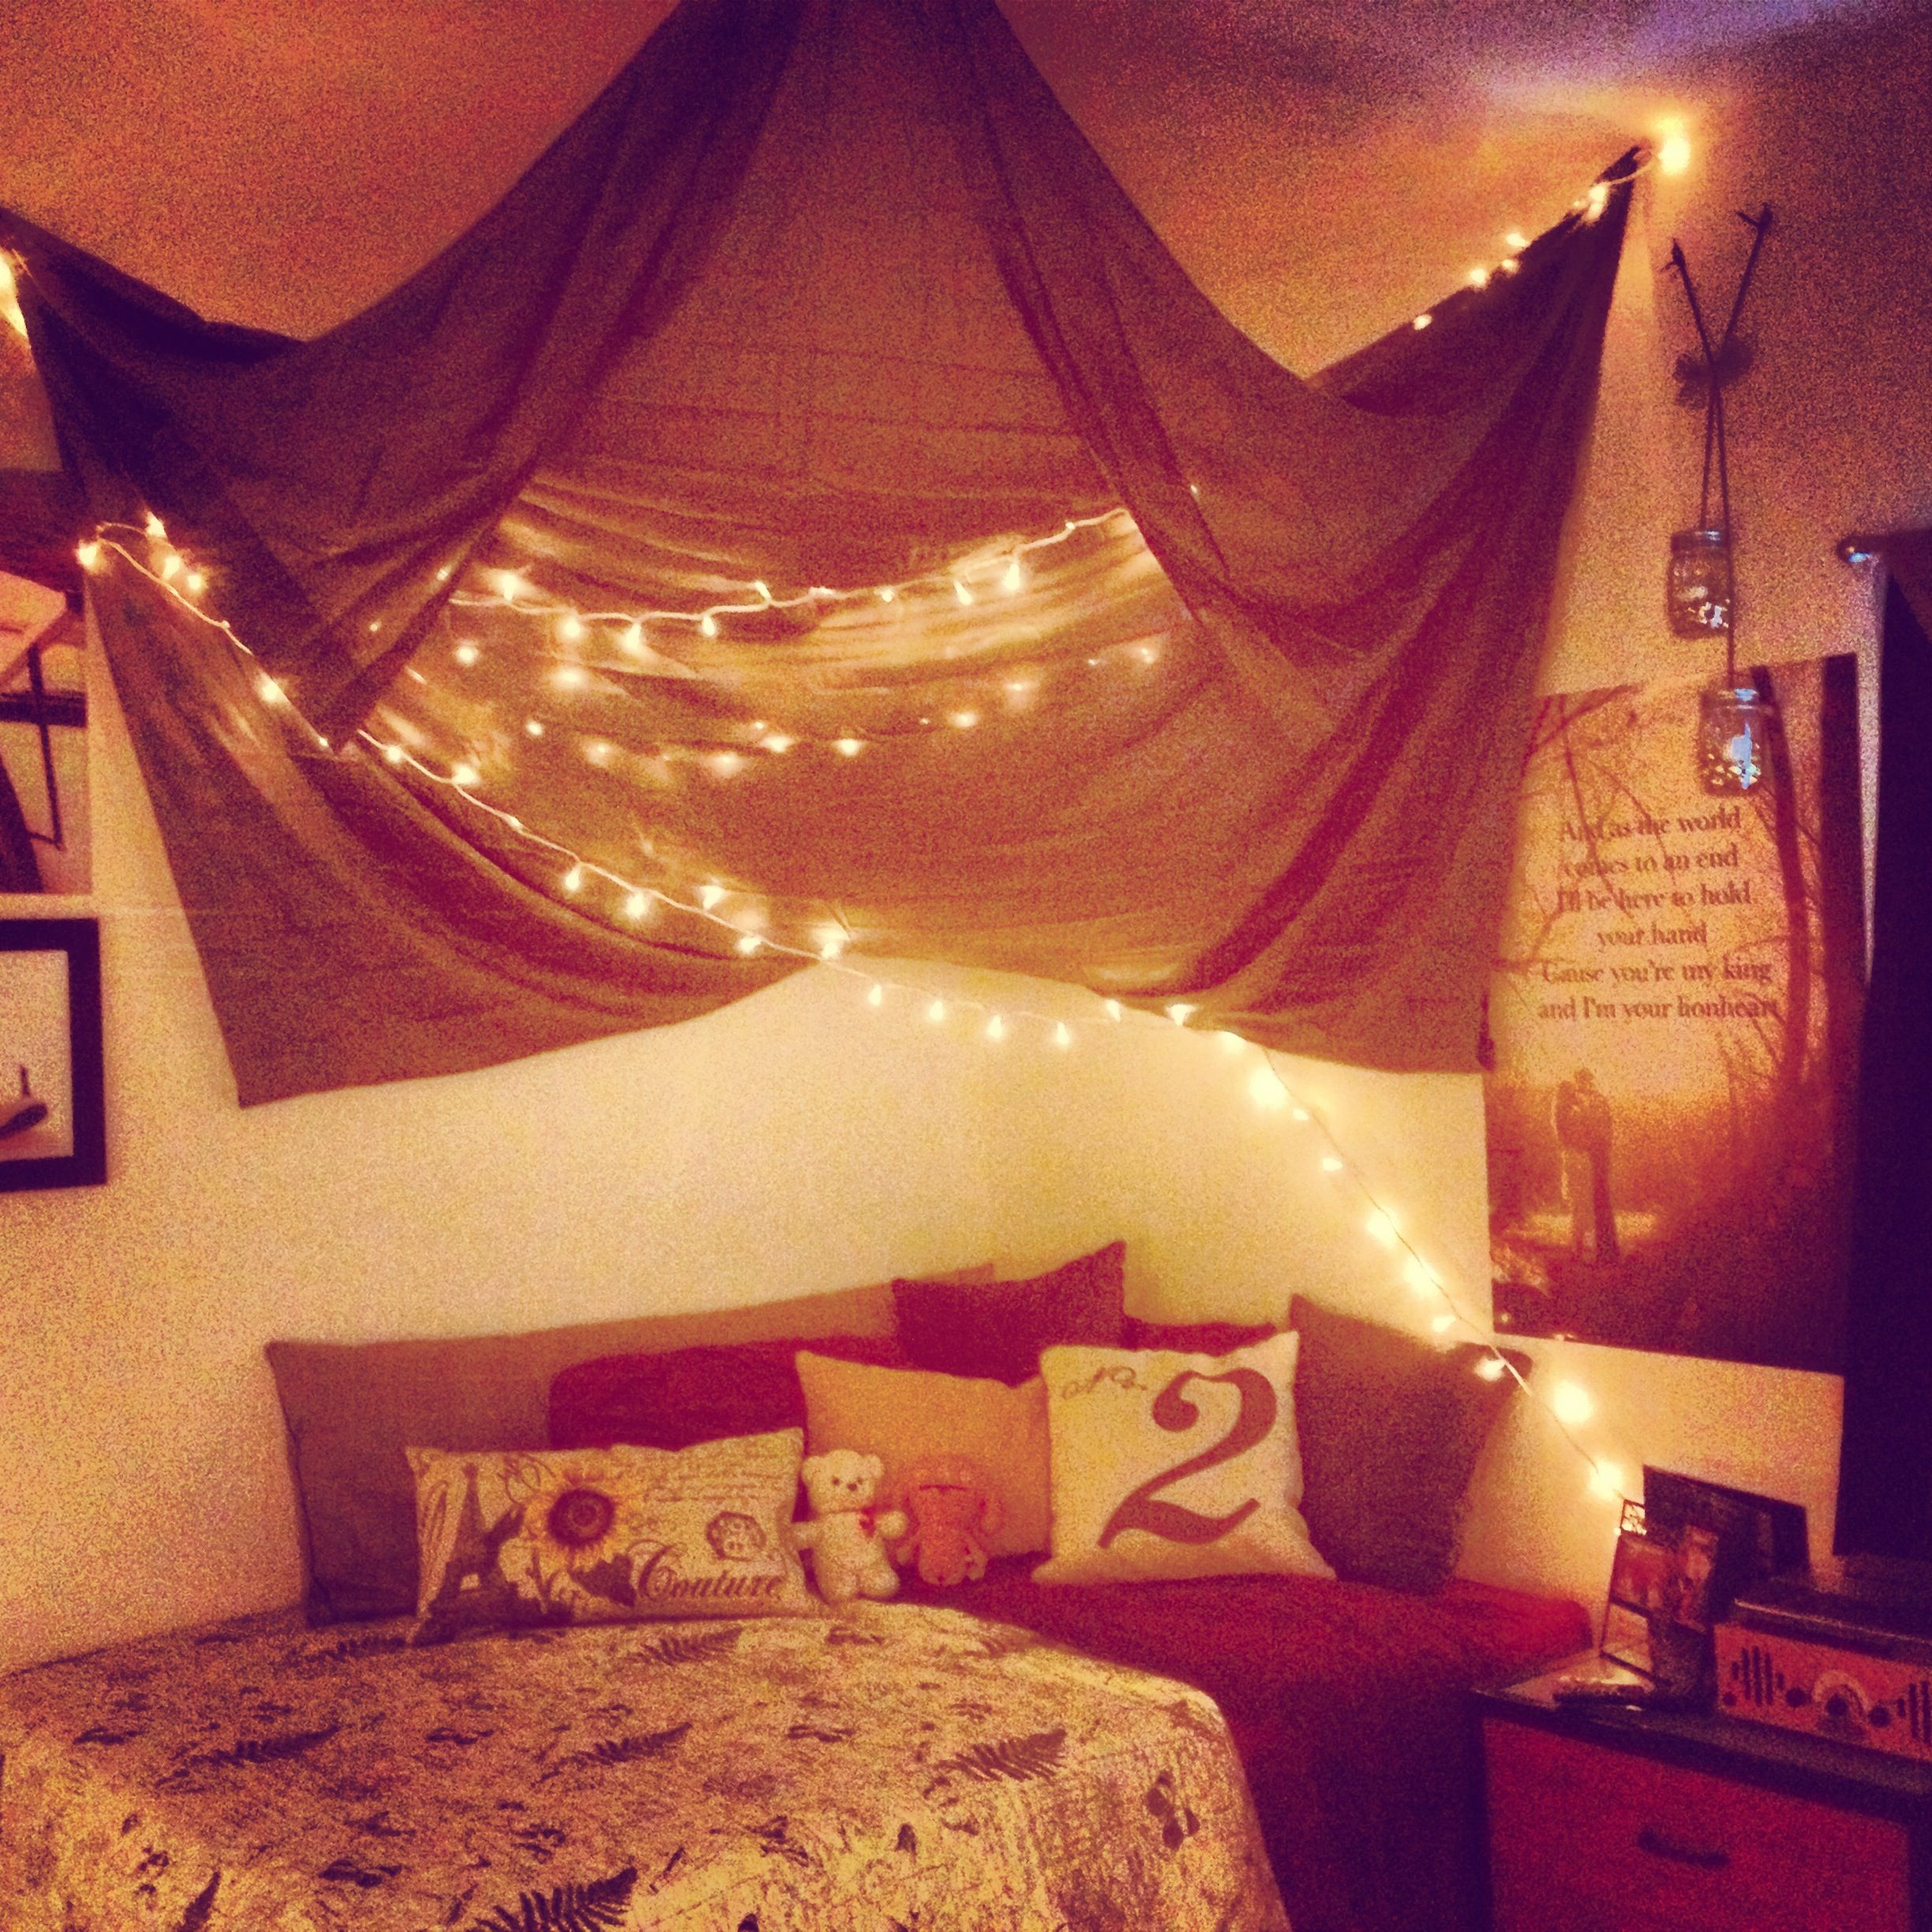 Bedroom Decor Hipster hipster o bohémien: arredare con stile la camera da letto